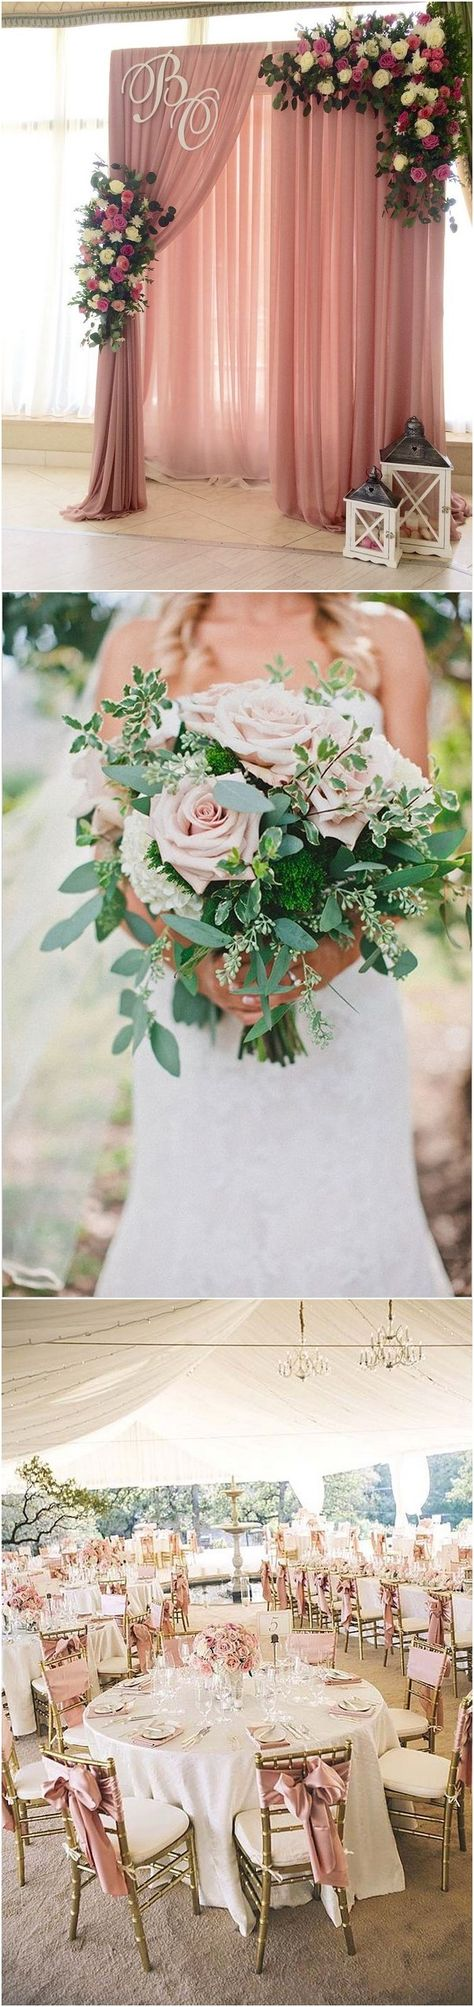 dusty rose wedding color ideas - dusty pink wedding color ideas  #weddings #weddingcolors #wedding #pinkweddings #weddingcolorpalette #himisspuff